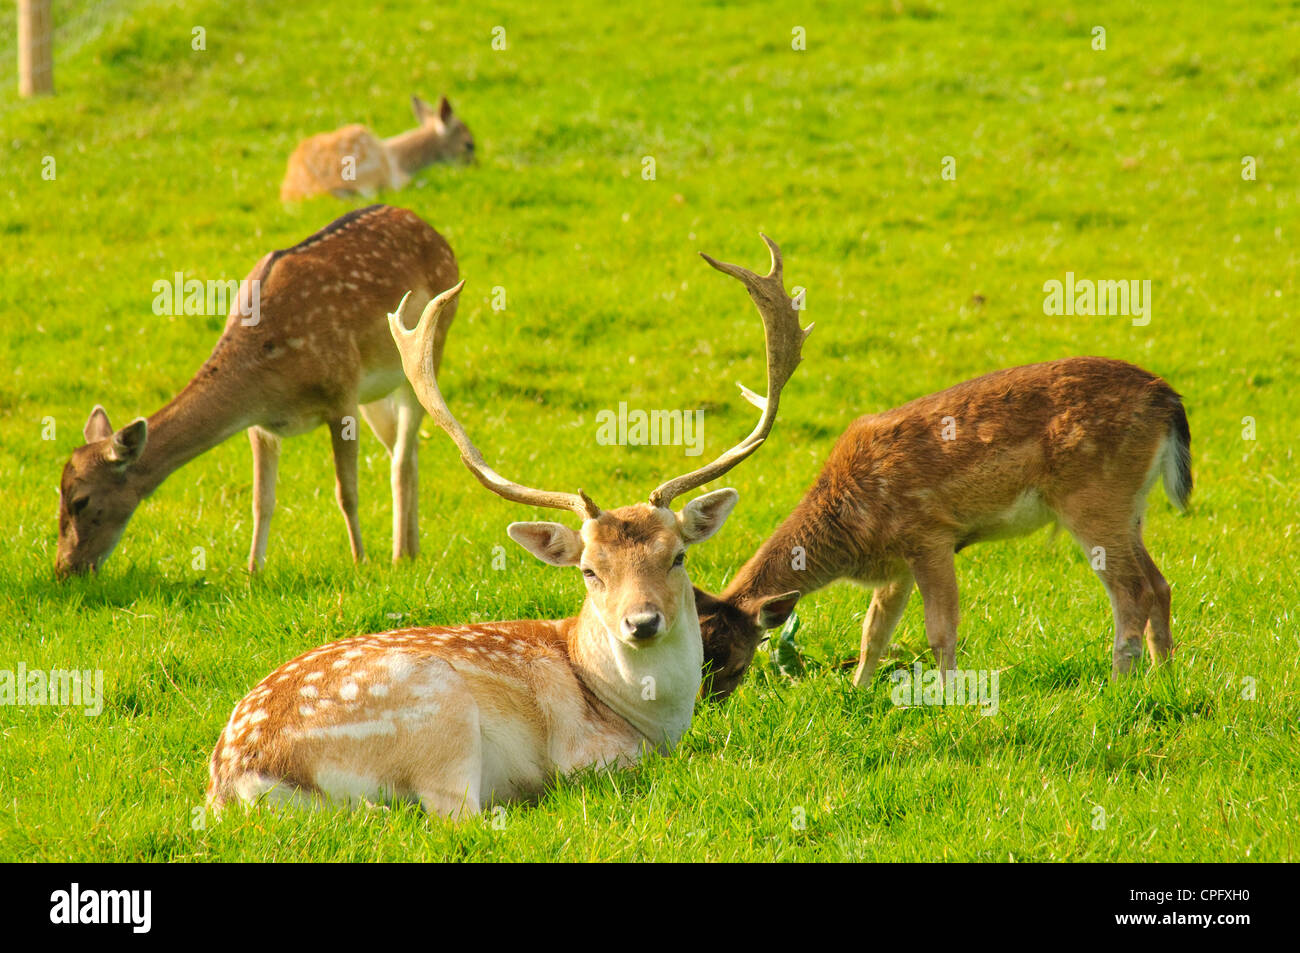 Fallow deer at Bowland Wild Boar Park in the Forest of Bowland Lancashire England - Stock Image